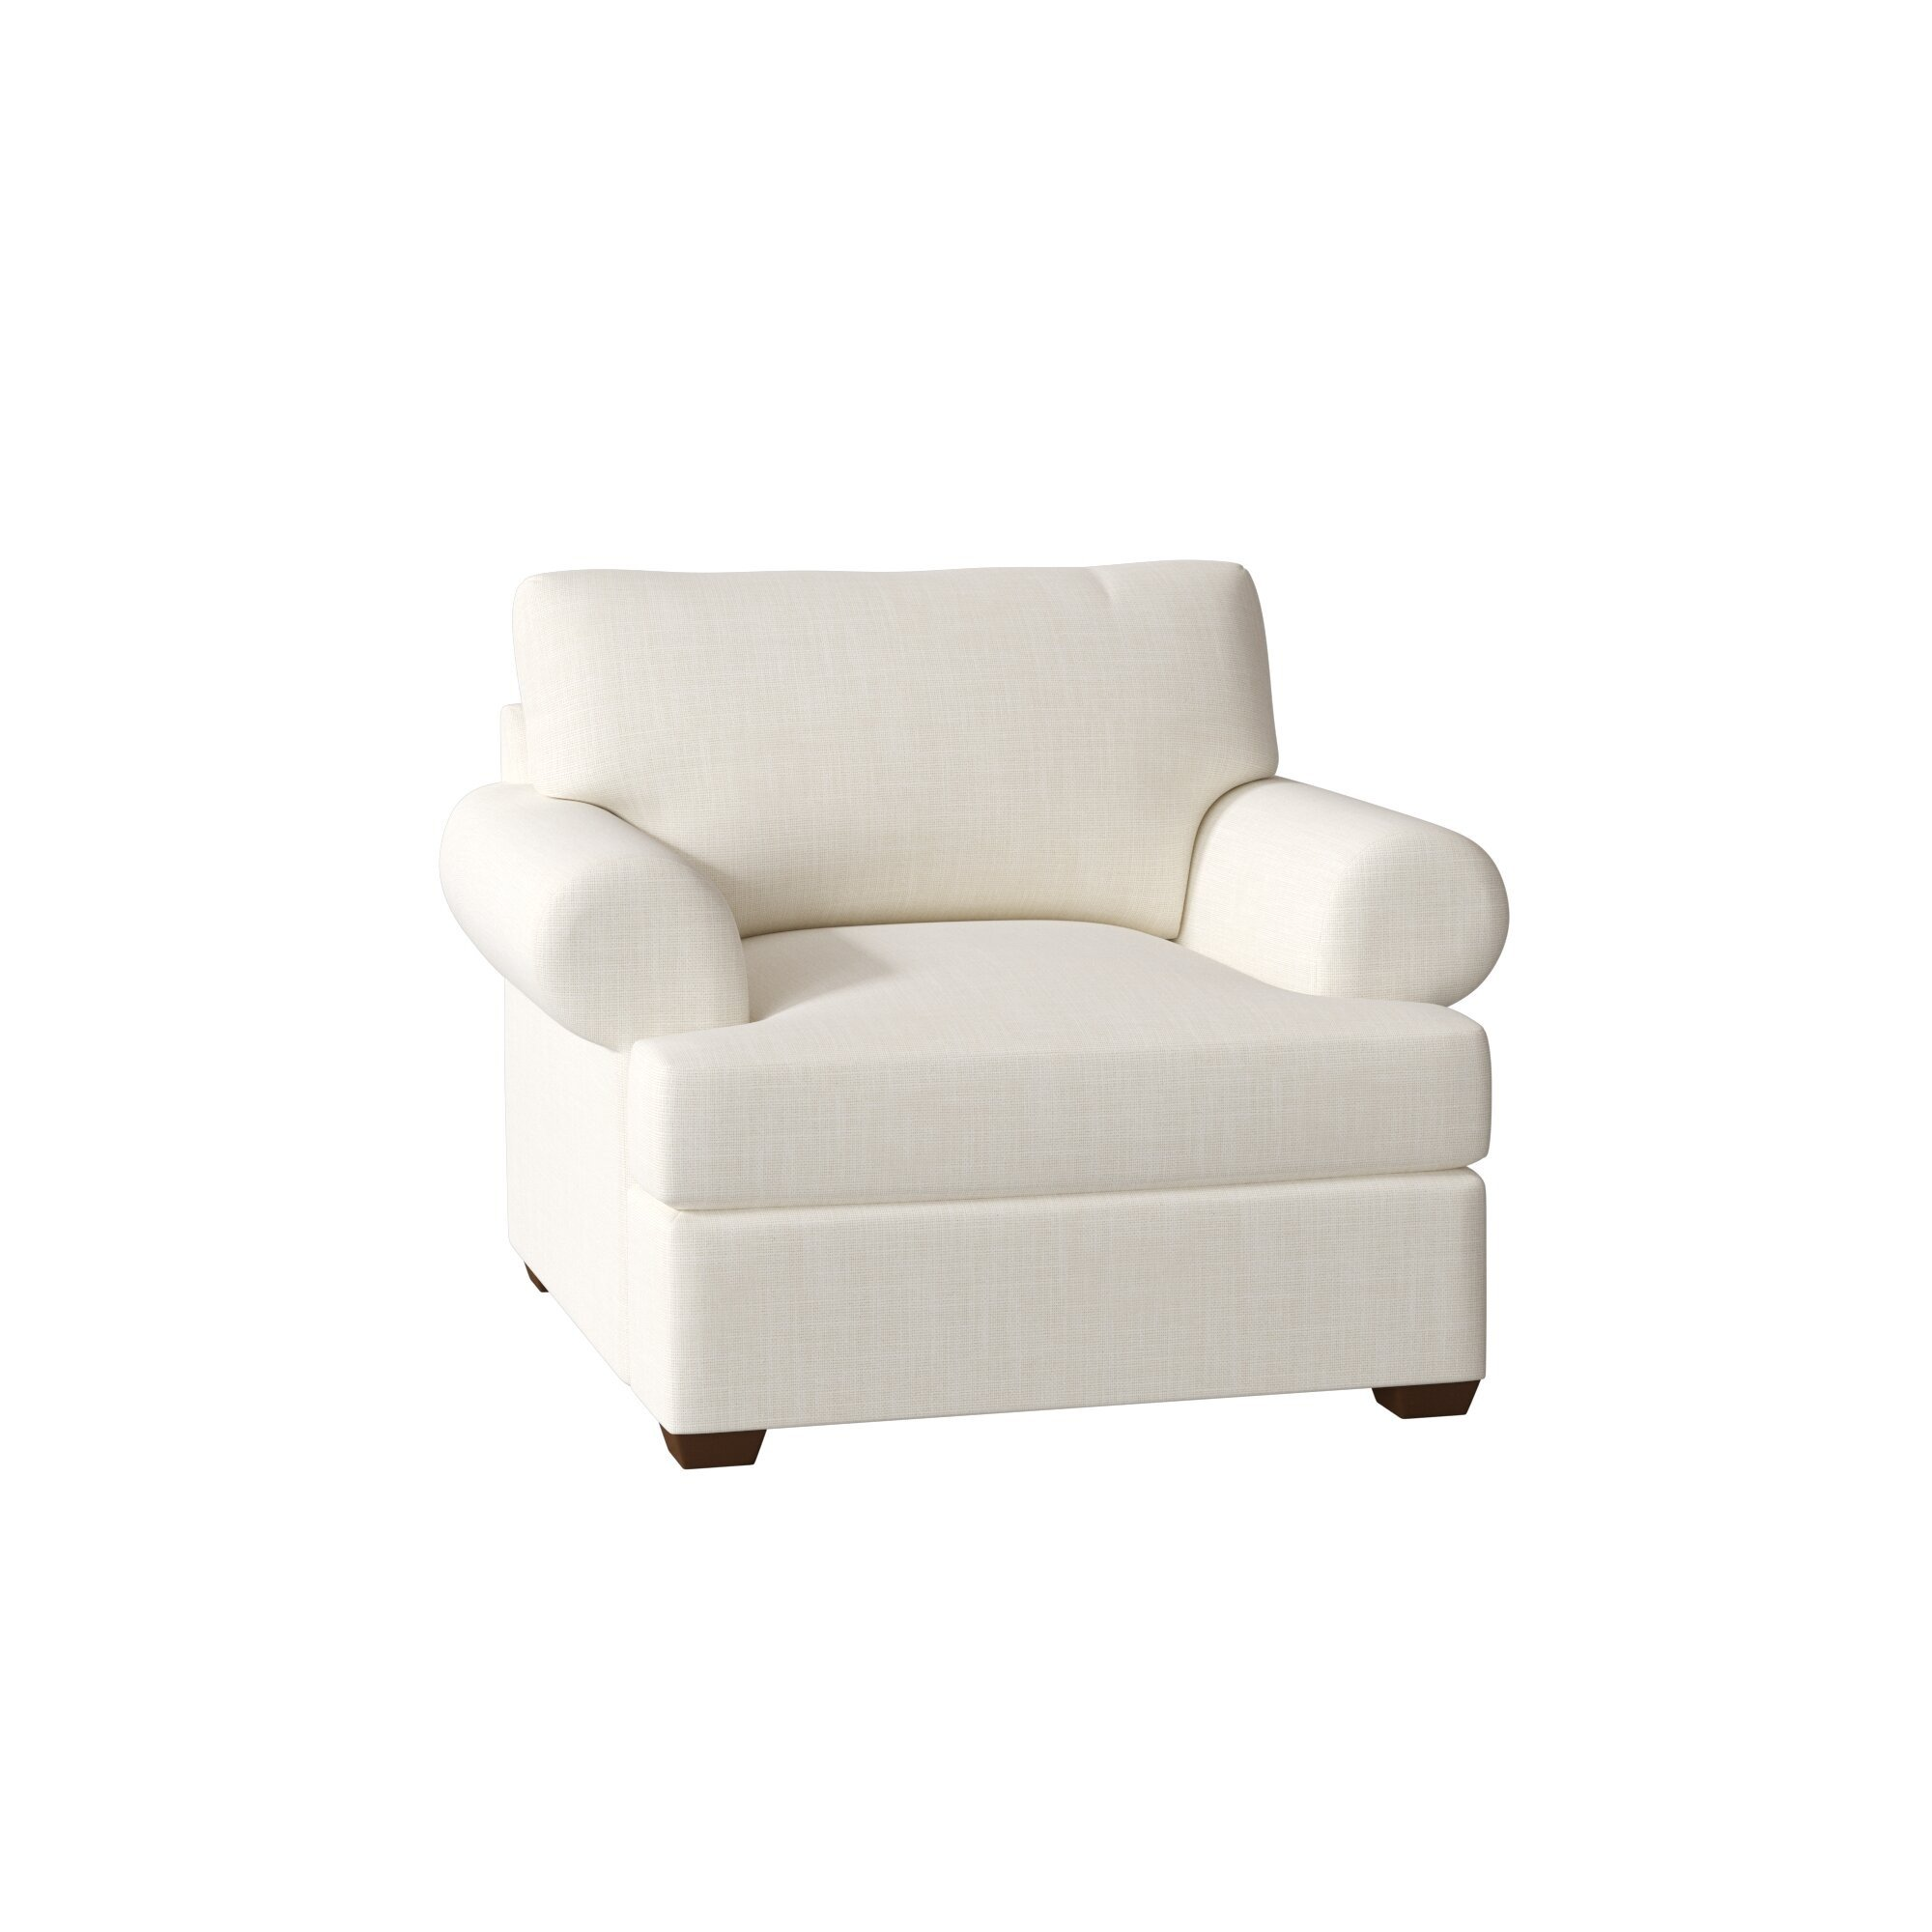 Bedroom Chair with Ottoman Elegant Benedict Armchair